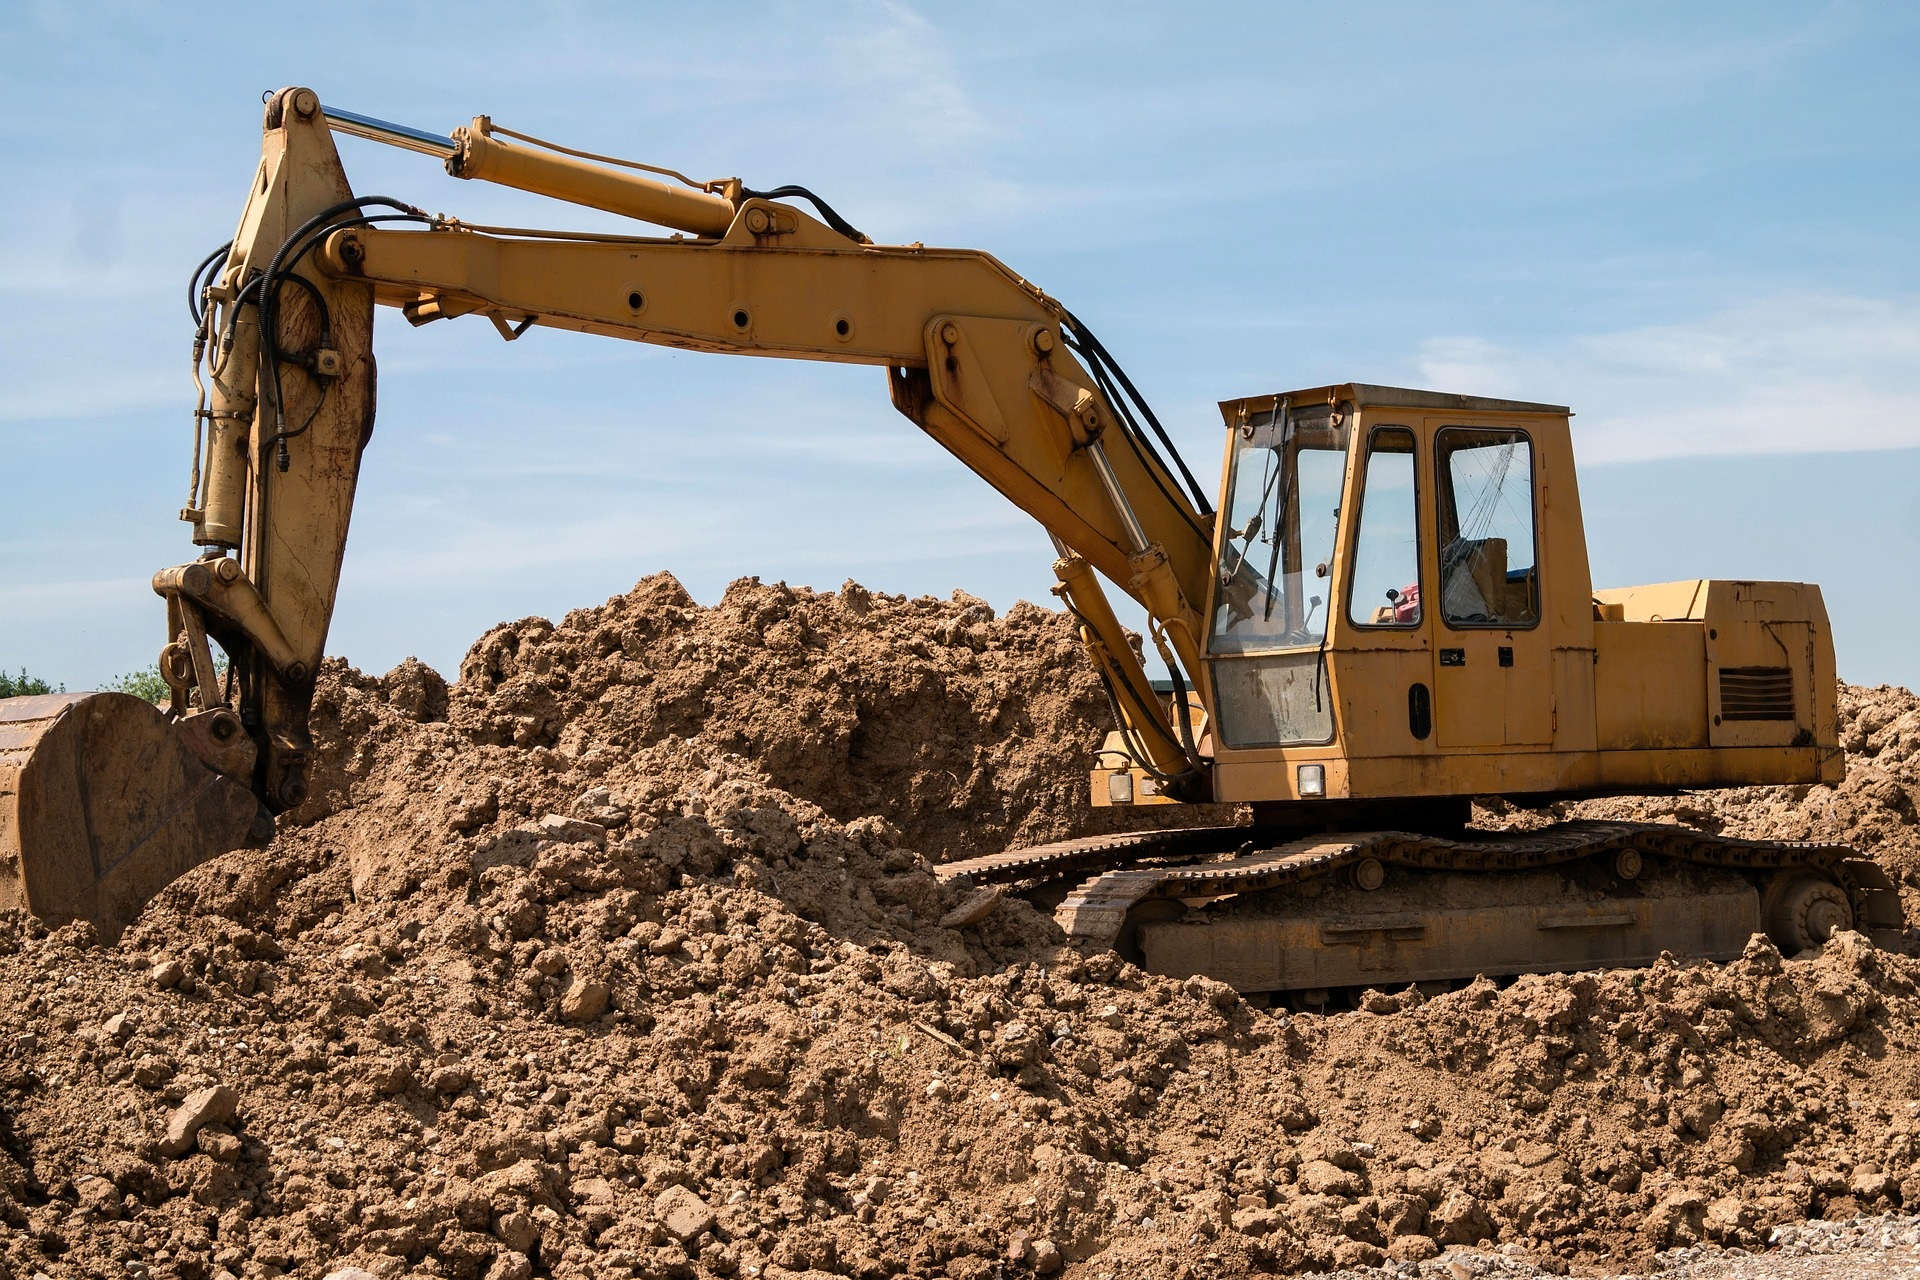 Health and Safety Concerns with Excavators